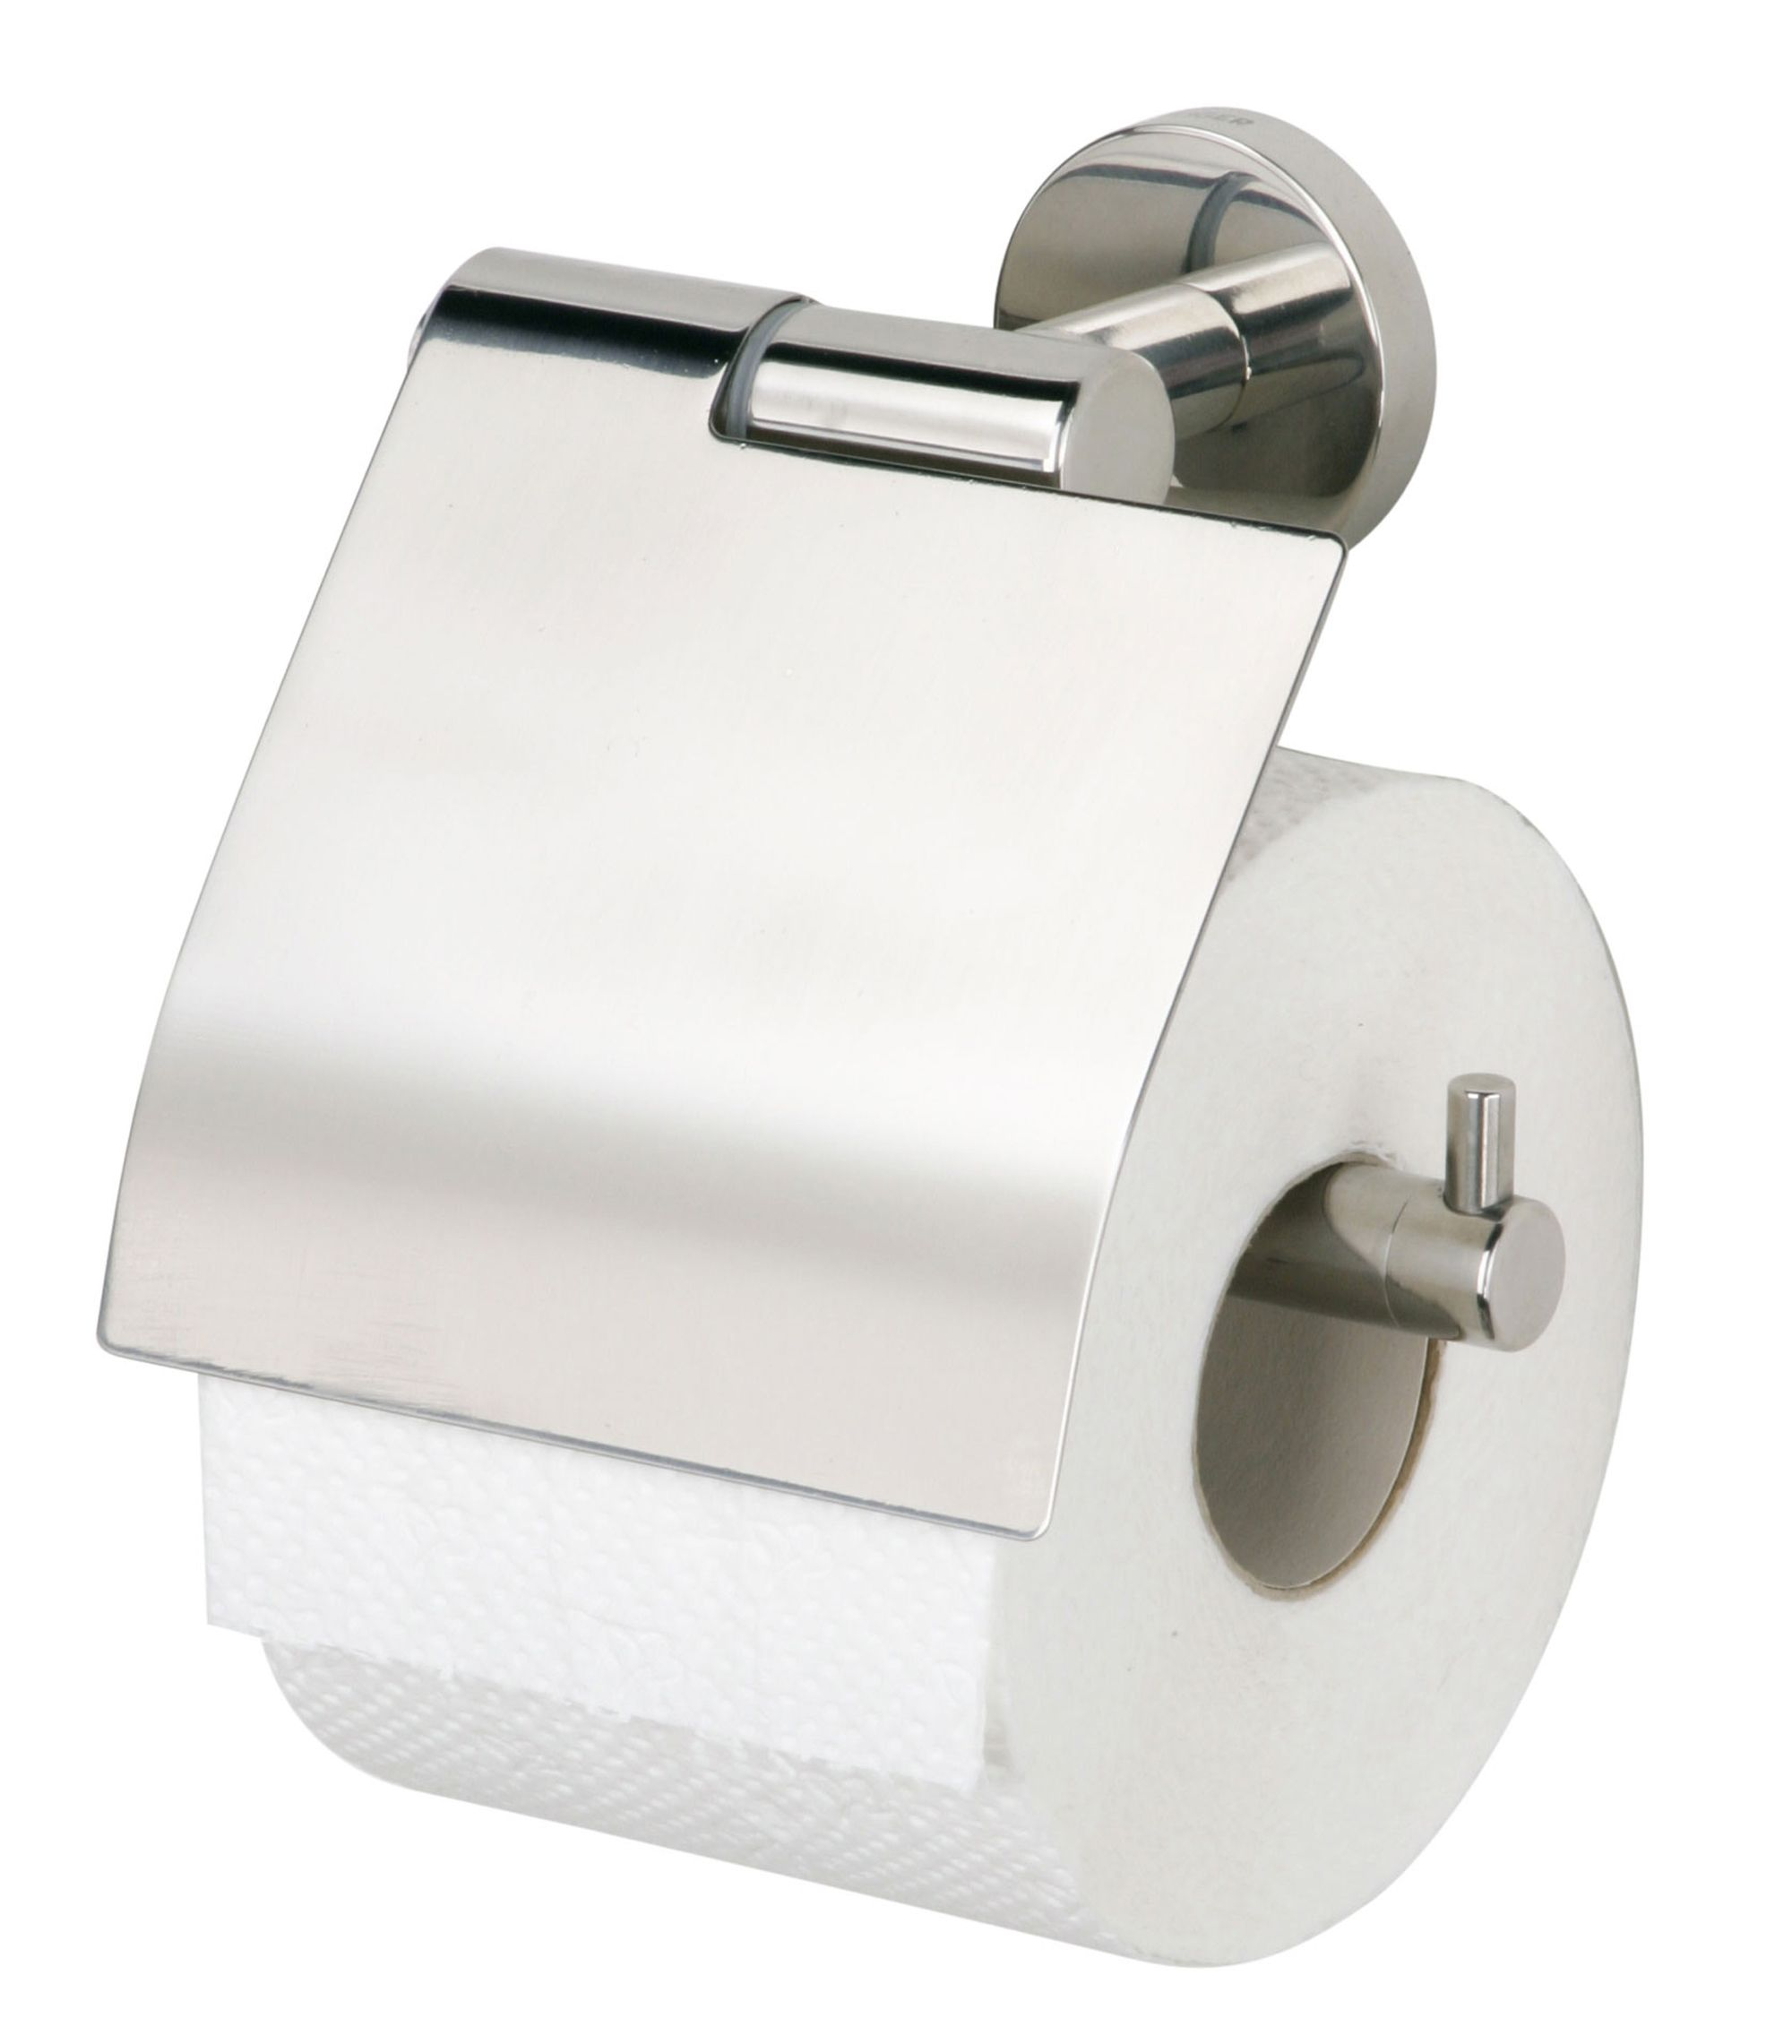 Tiger Boston toiletrolhouder klep RVS glans